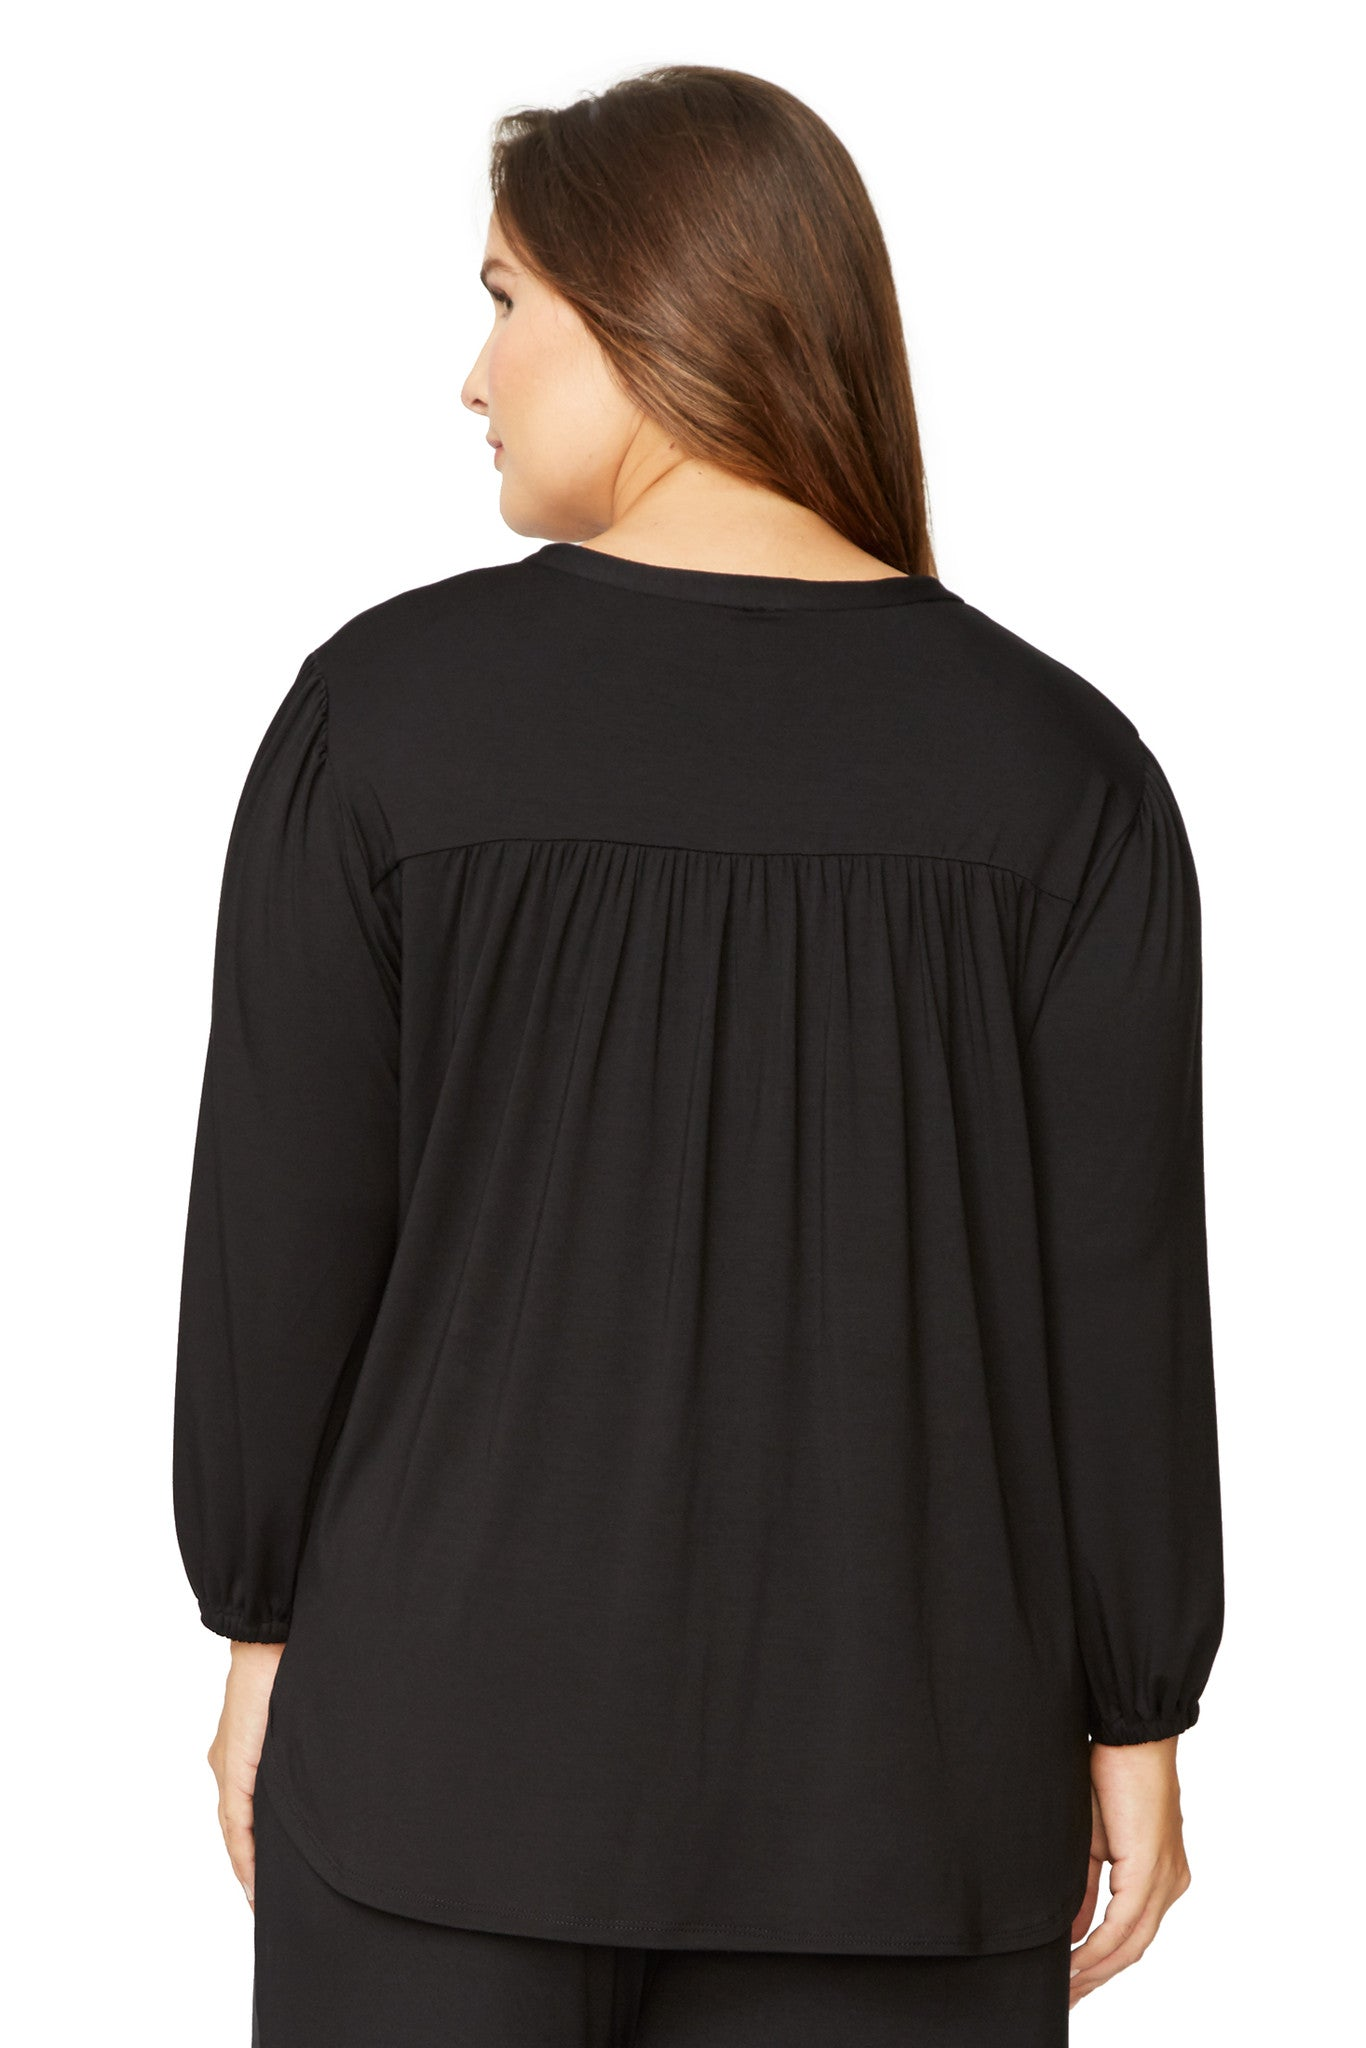 Mathilde Top WL - Black